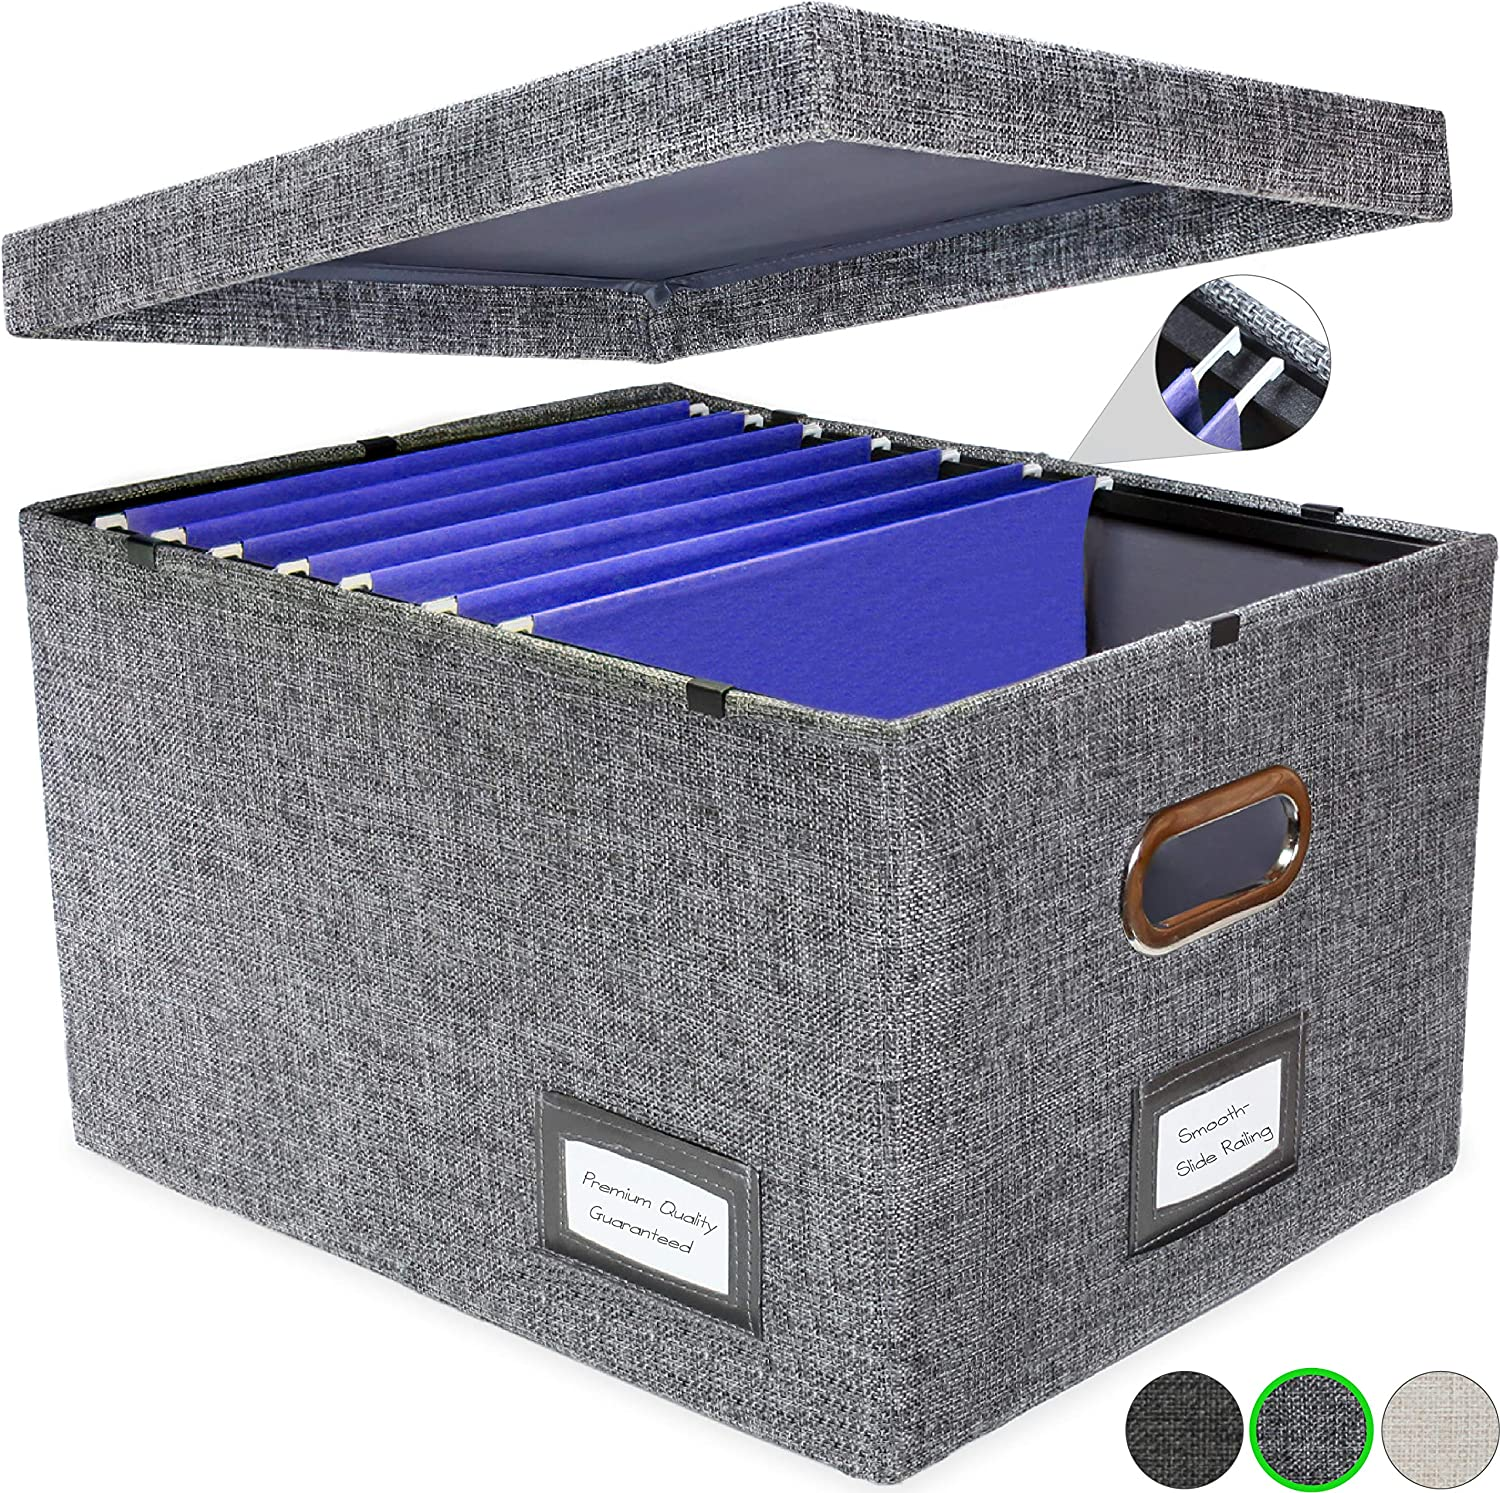 New and Improved Collapsible Hanging File Storage Organizer with Smooth Sliding Rail | Office Hanging File Box Storing Solution| Fits Letter/Legal | 1 Pack (Light Charcoal Grey)